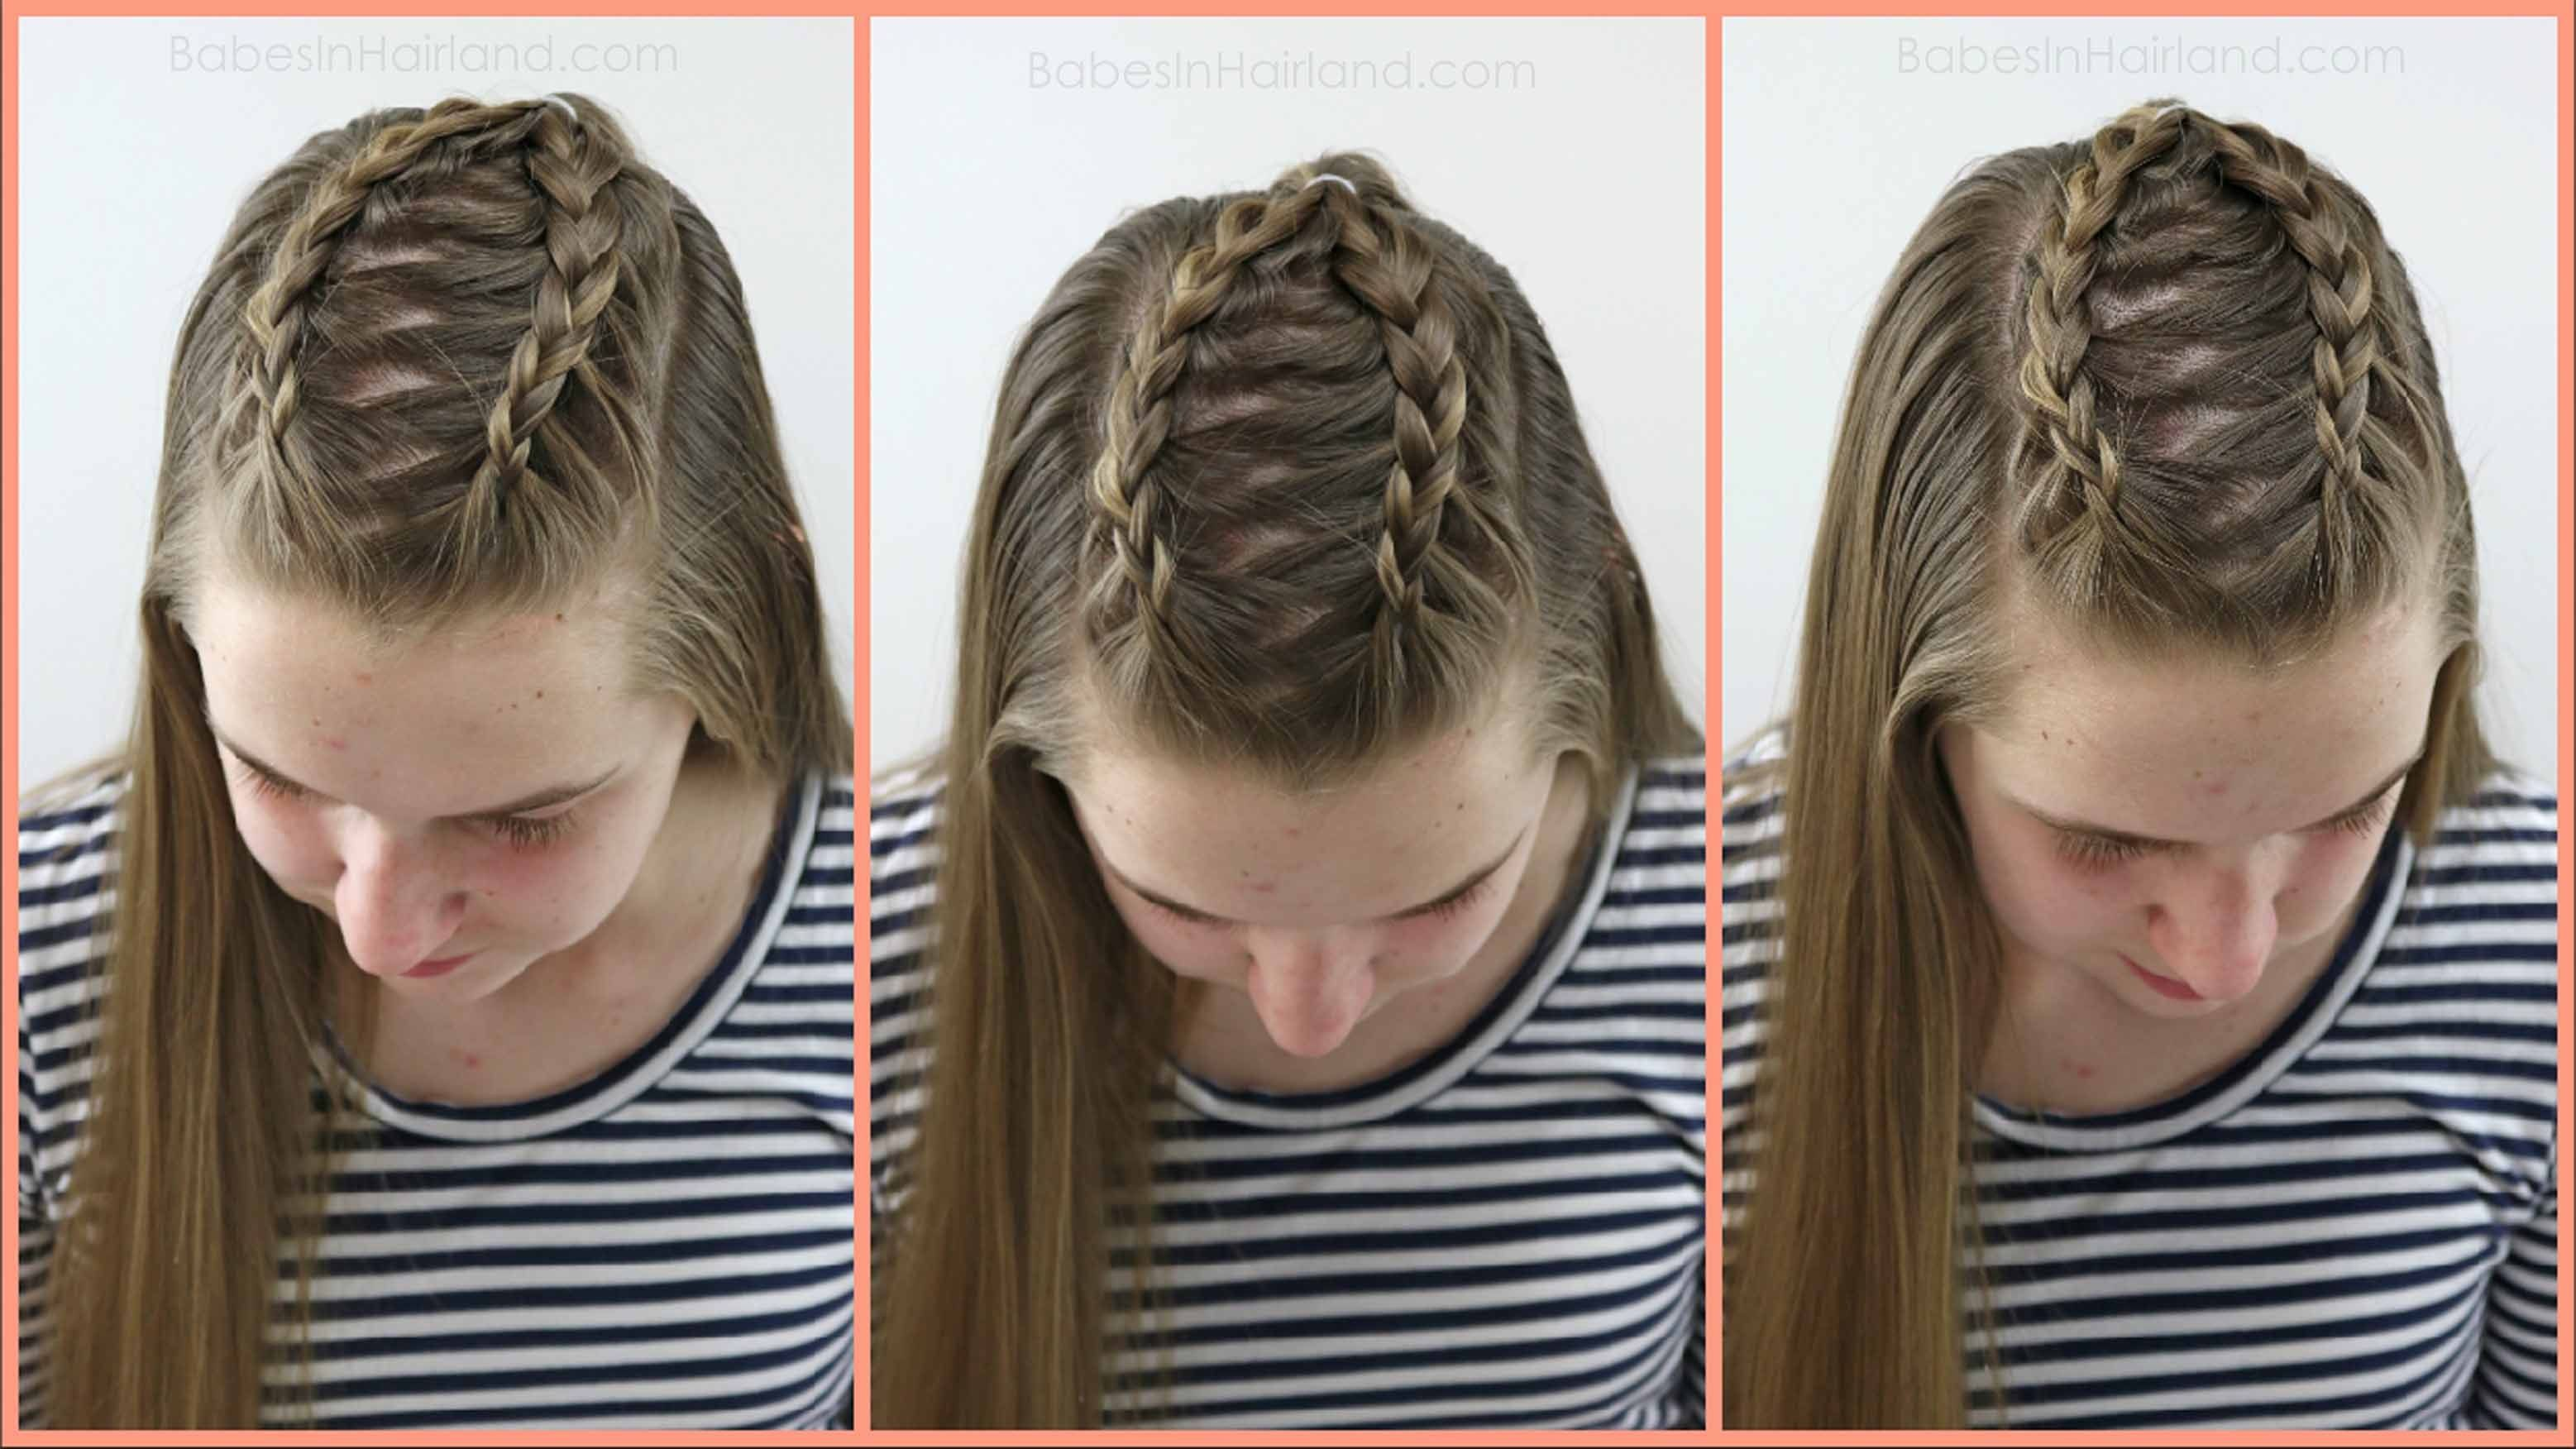 2 dutch braids 5 different hairstyles | hair and beauty